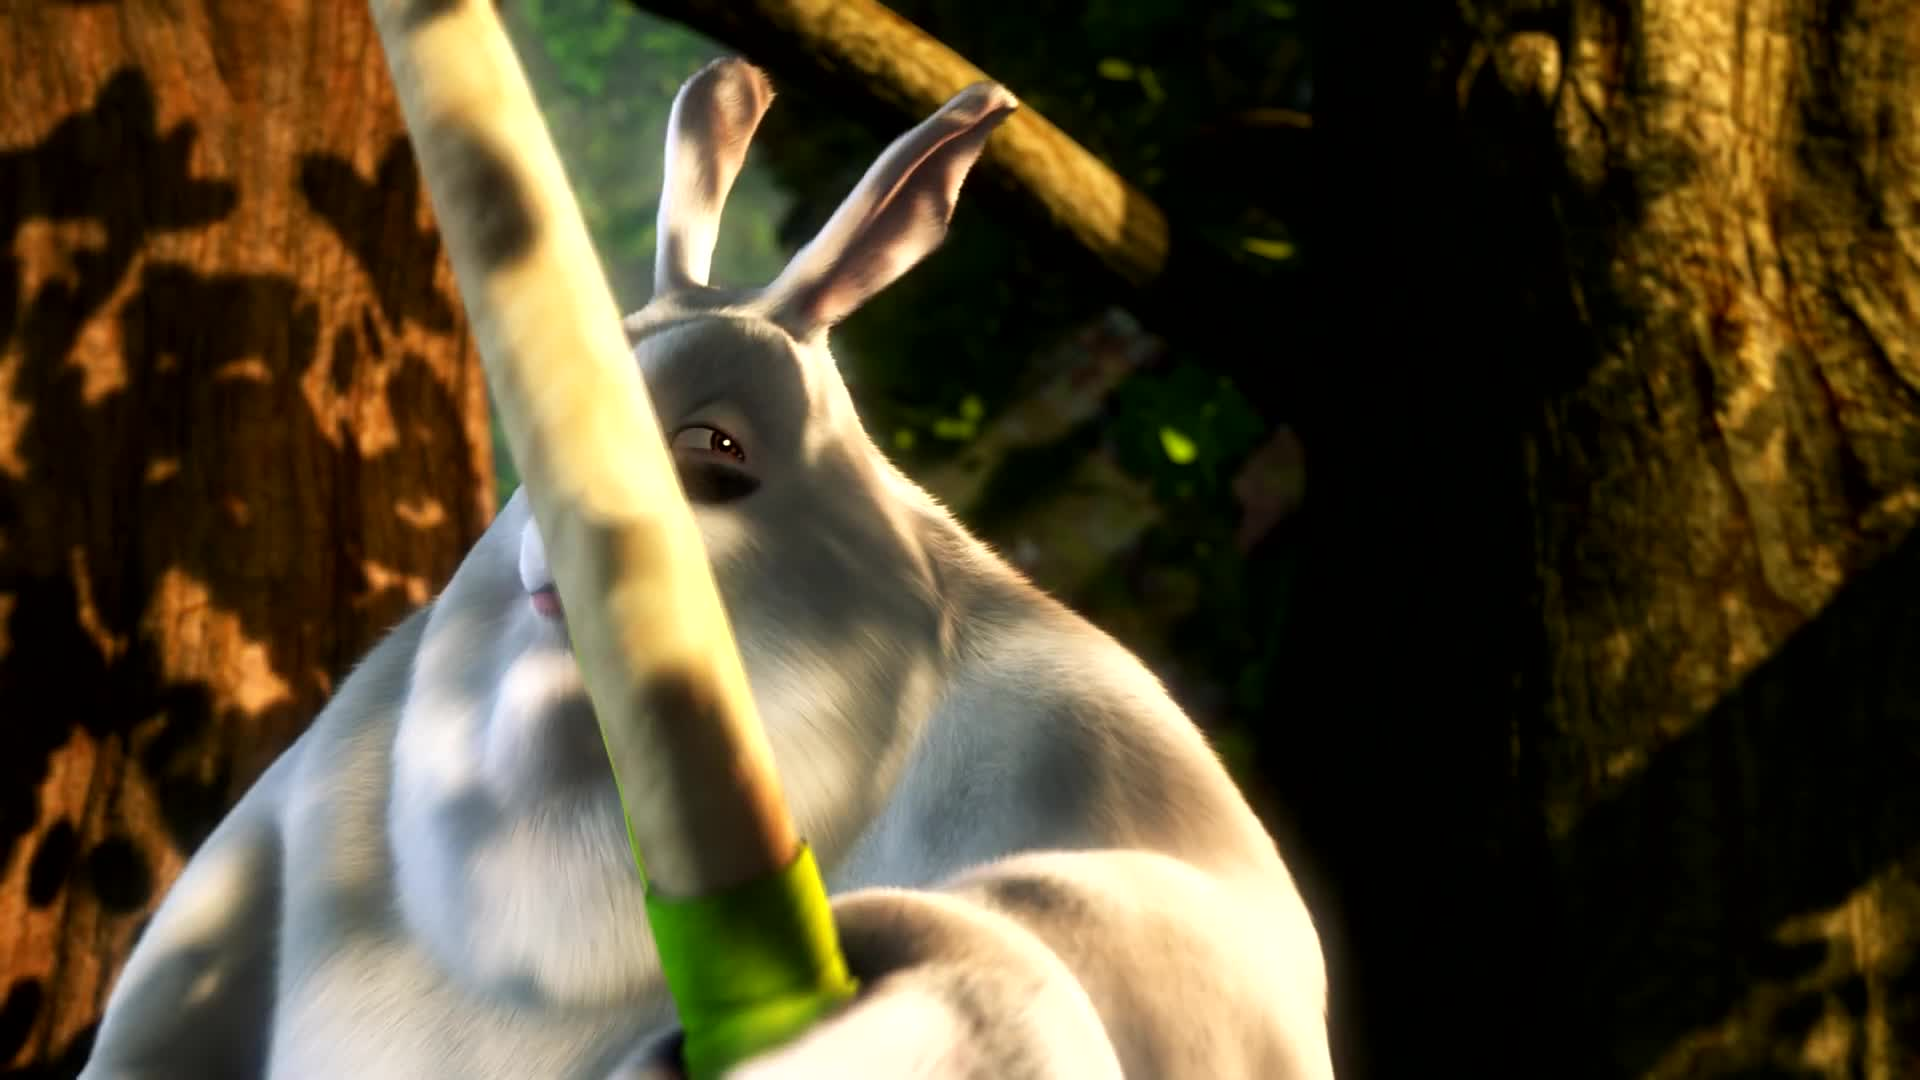 Big Buck Bunny (1080p HD)-huVVKz8P3vU